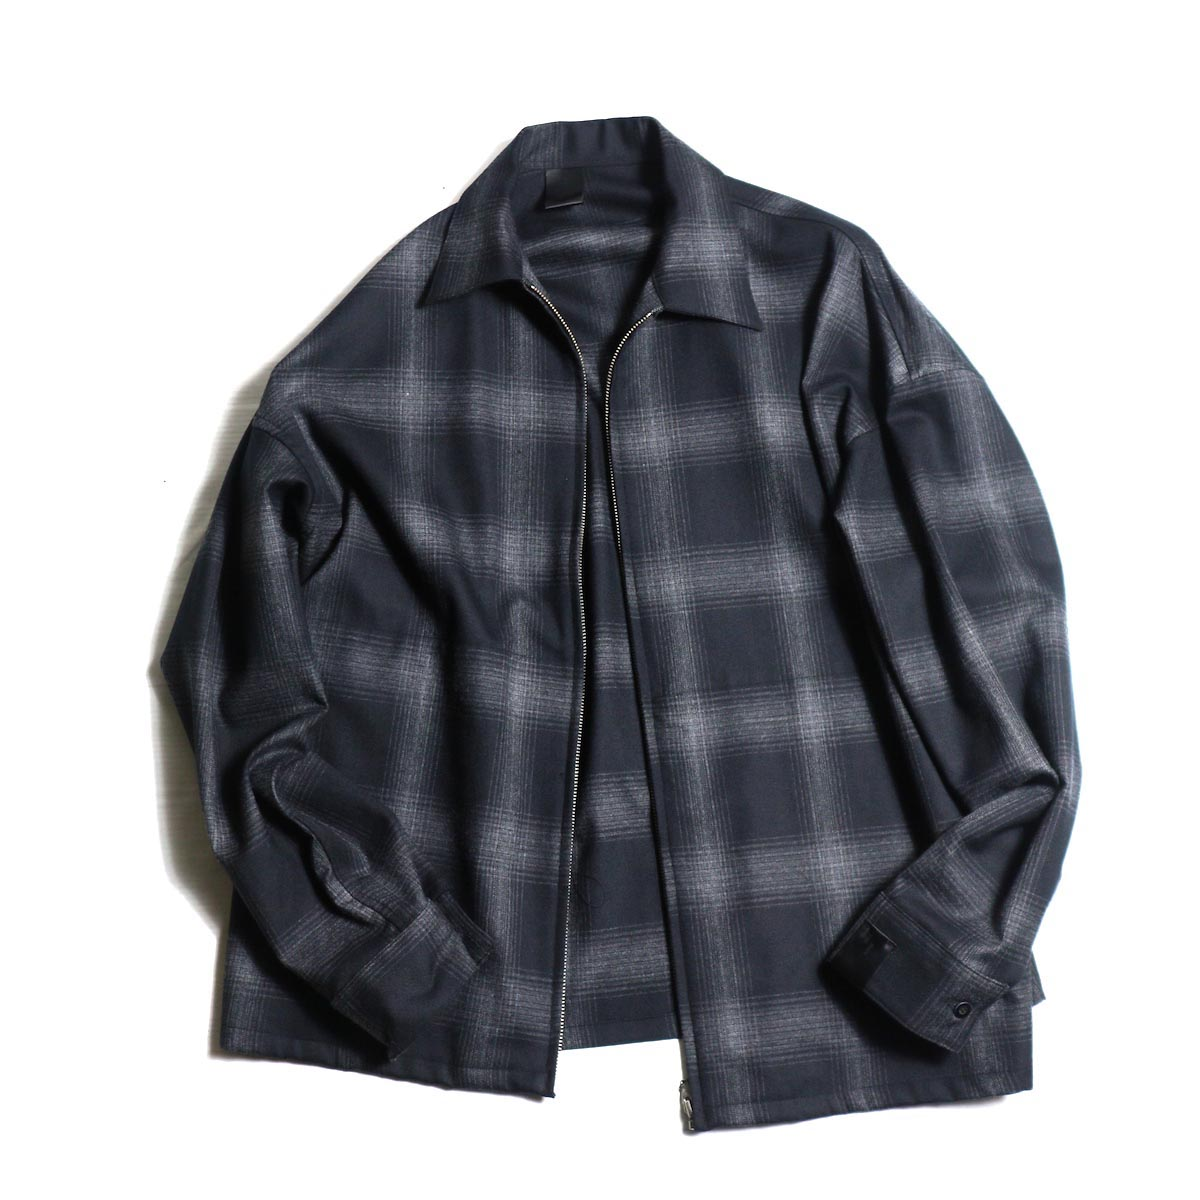 N.HOOLYWOOD /282-SH08-011 ZIP UP SHIRT